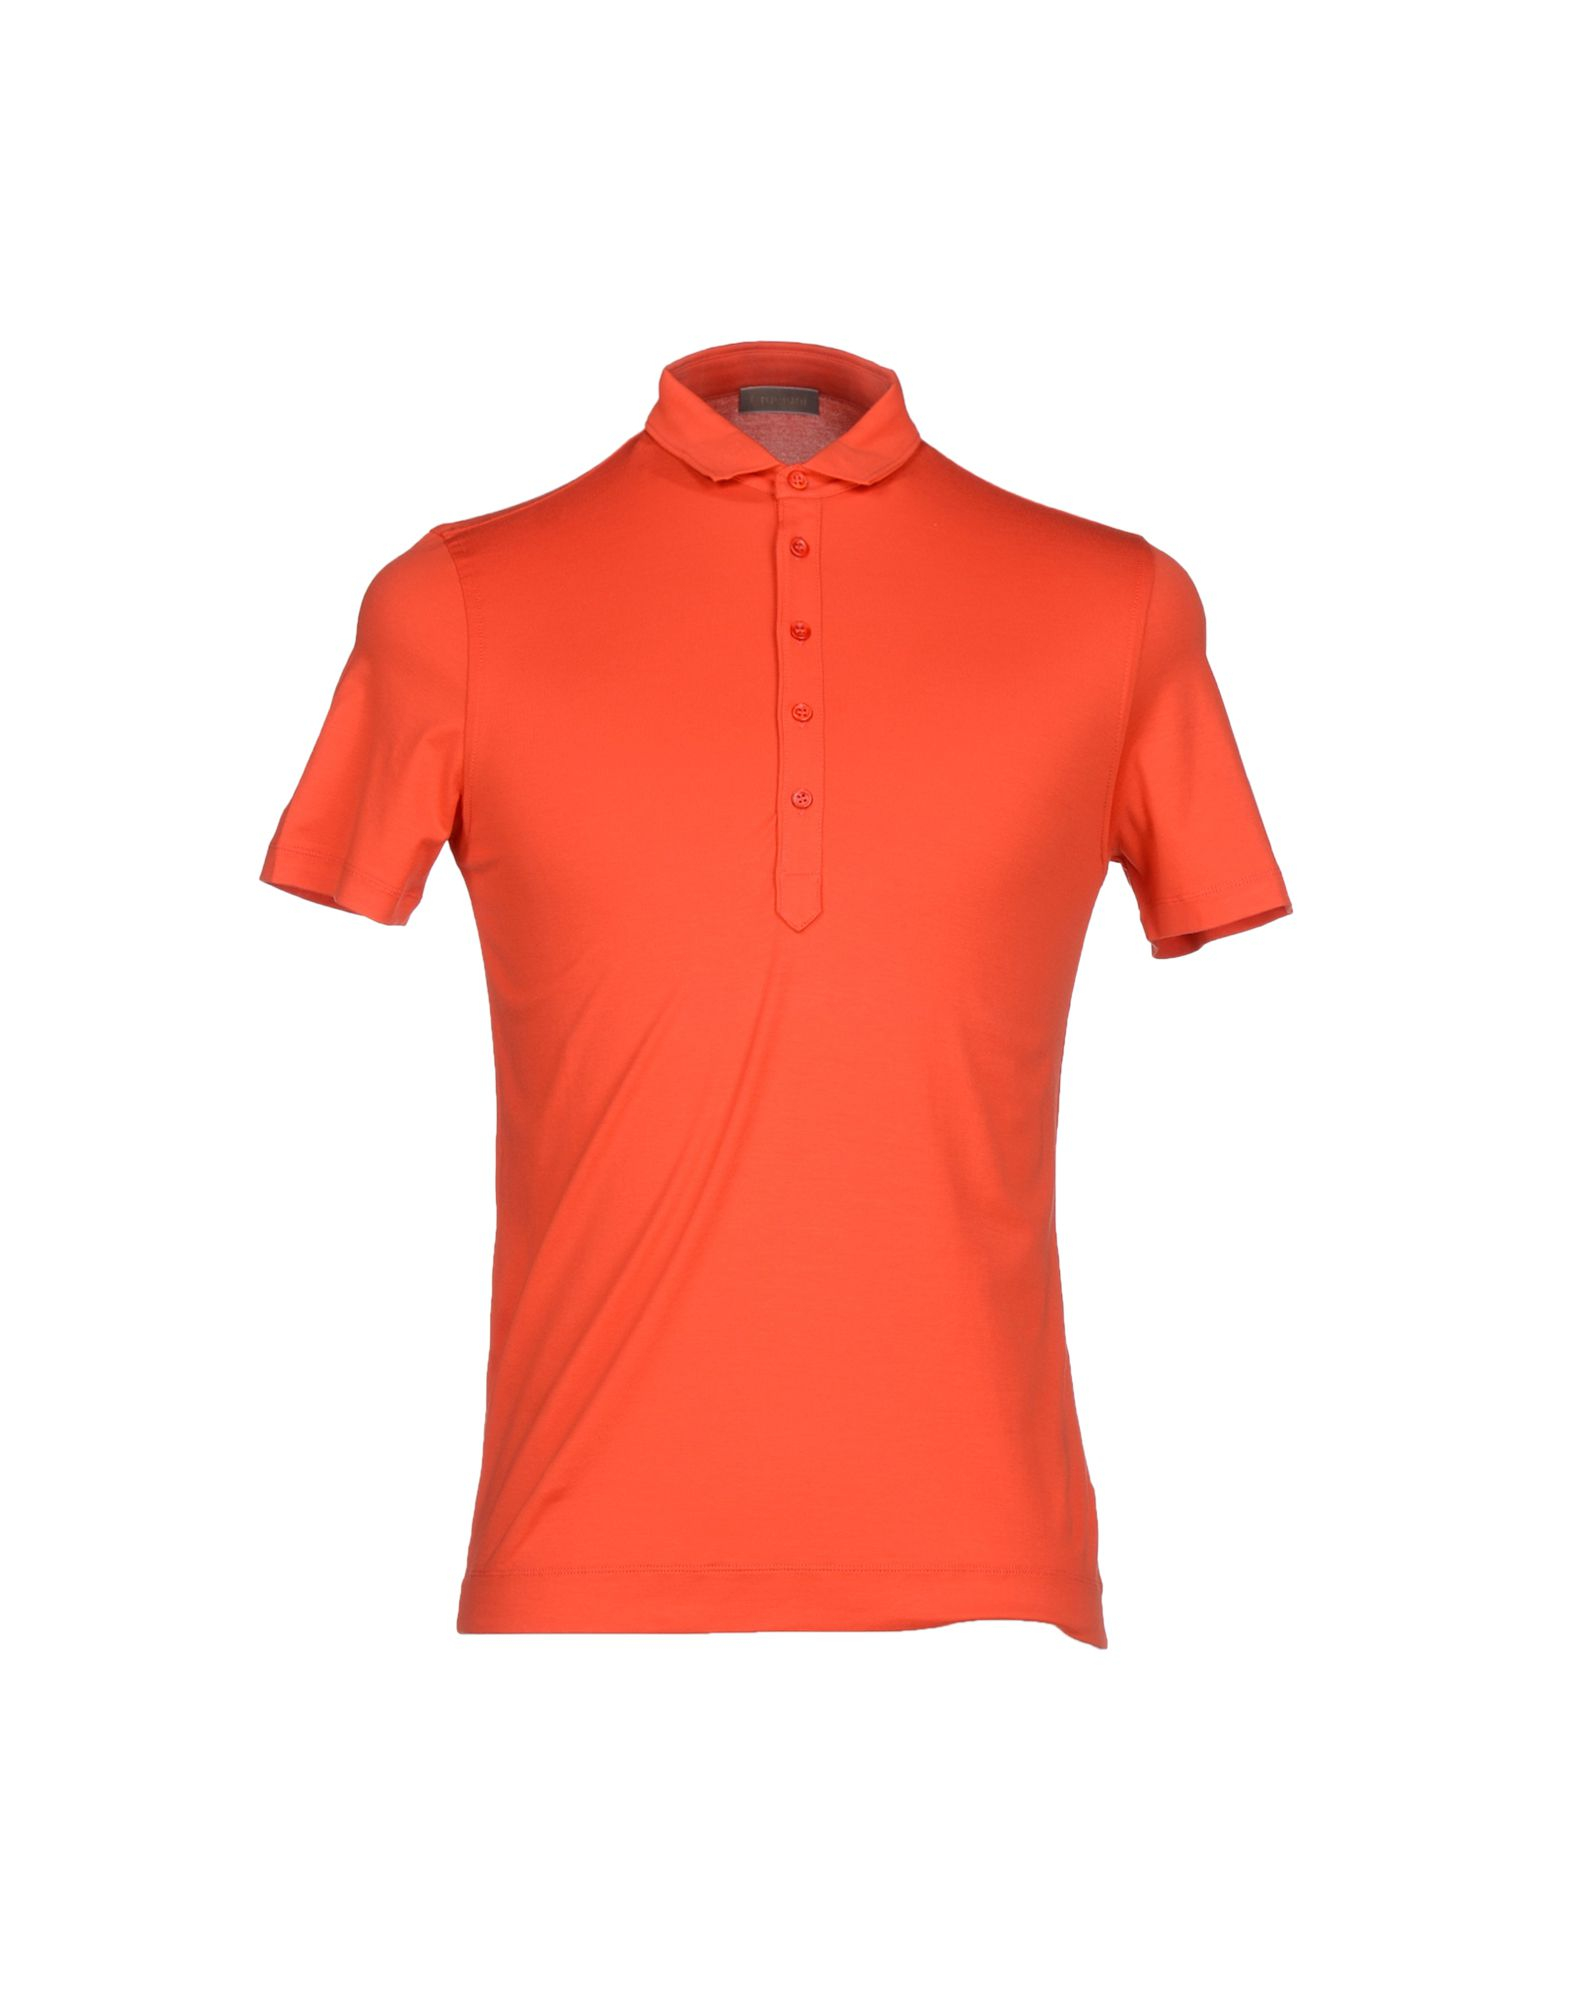 Cruciani polo shirt in orange for men coral lyst for Coral shirts for guys